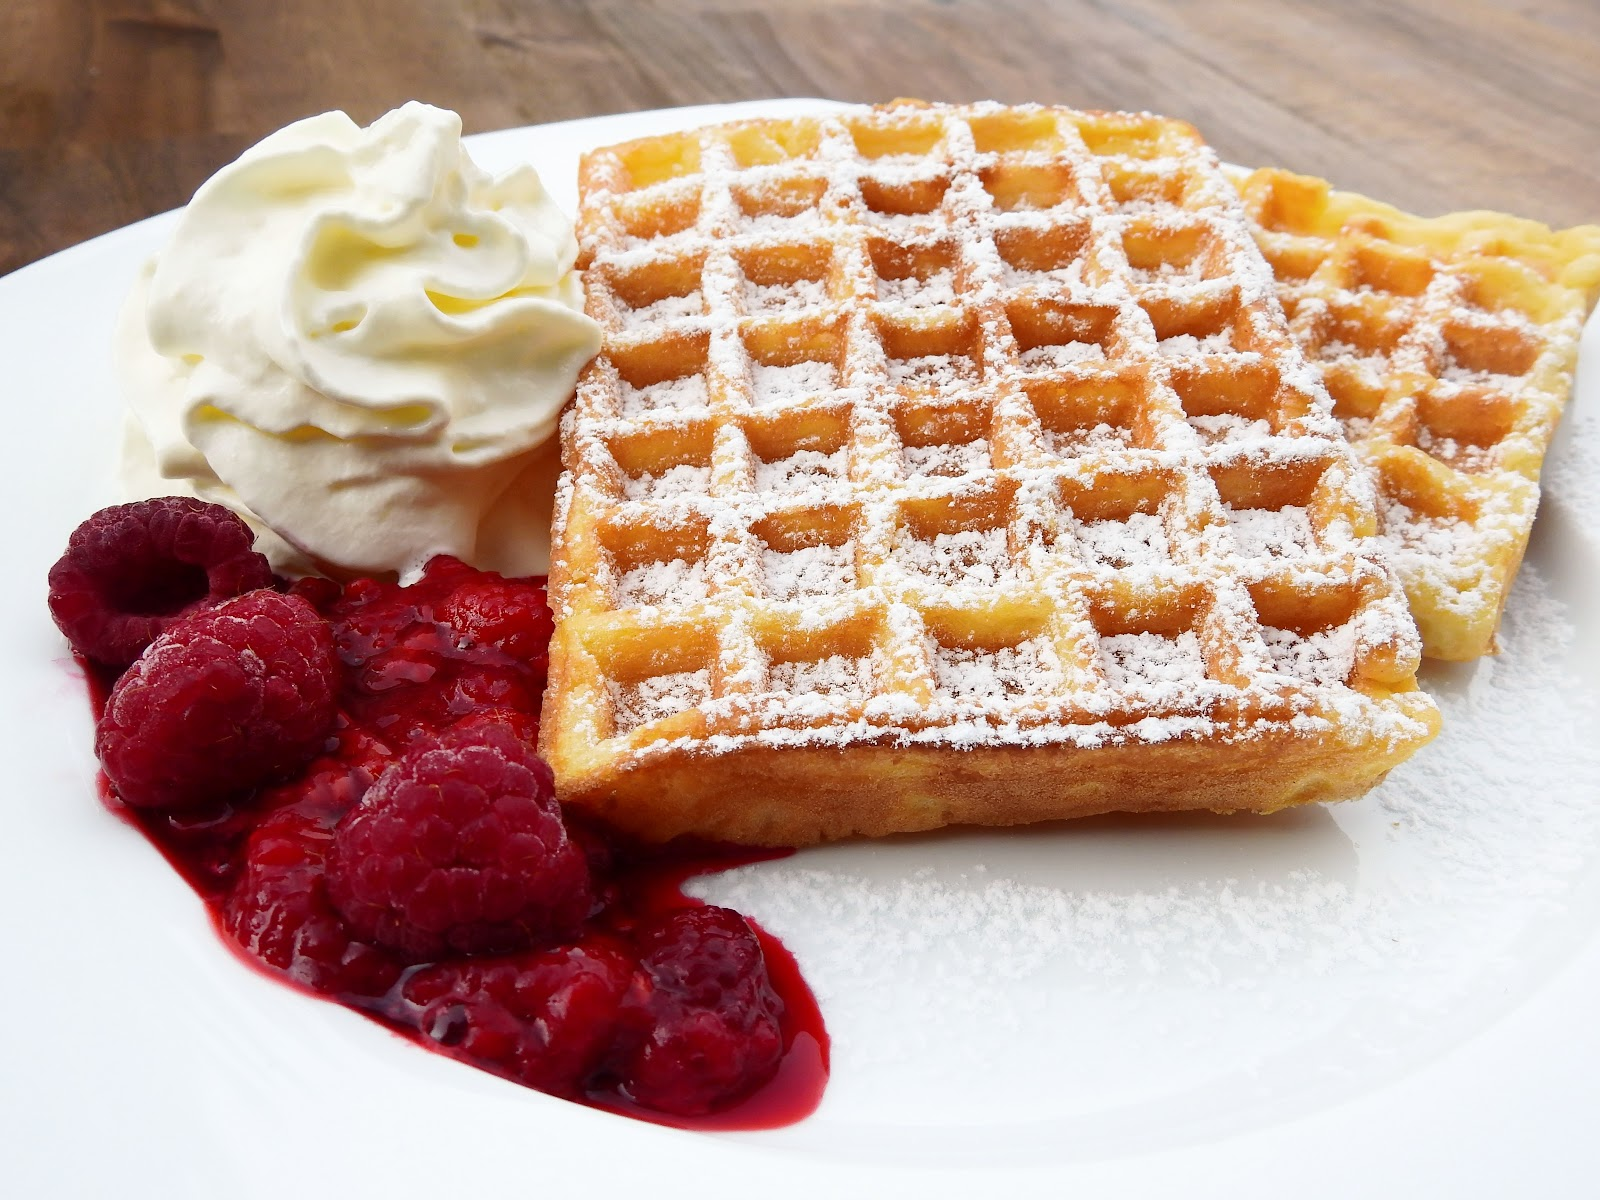 Waffle with raspberries and whip cream on a plate.